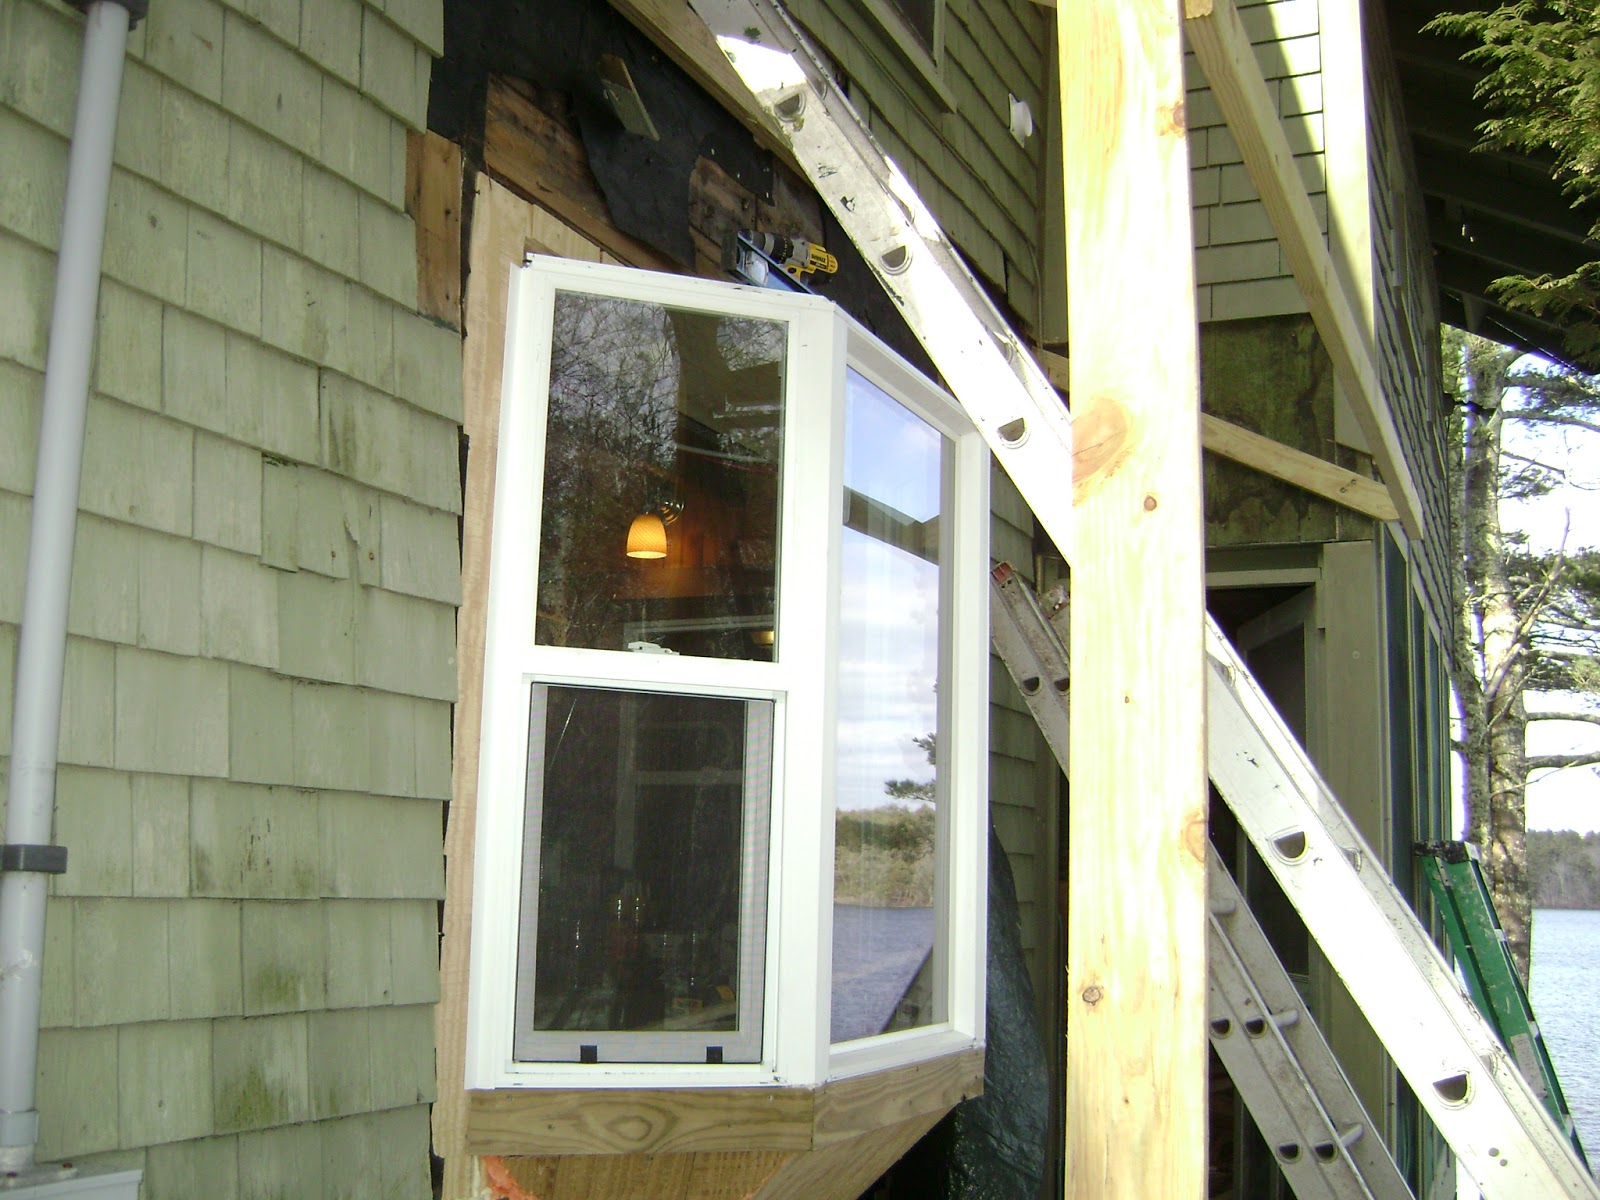 Long pond endeavor company bay window with new shed roof for New window company